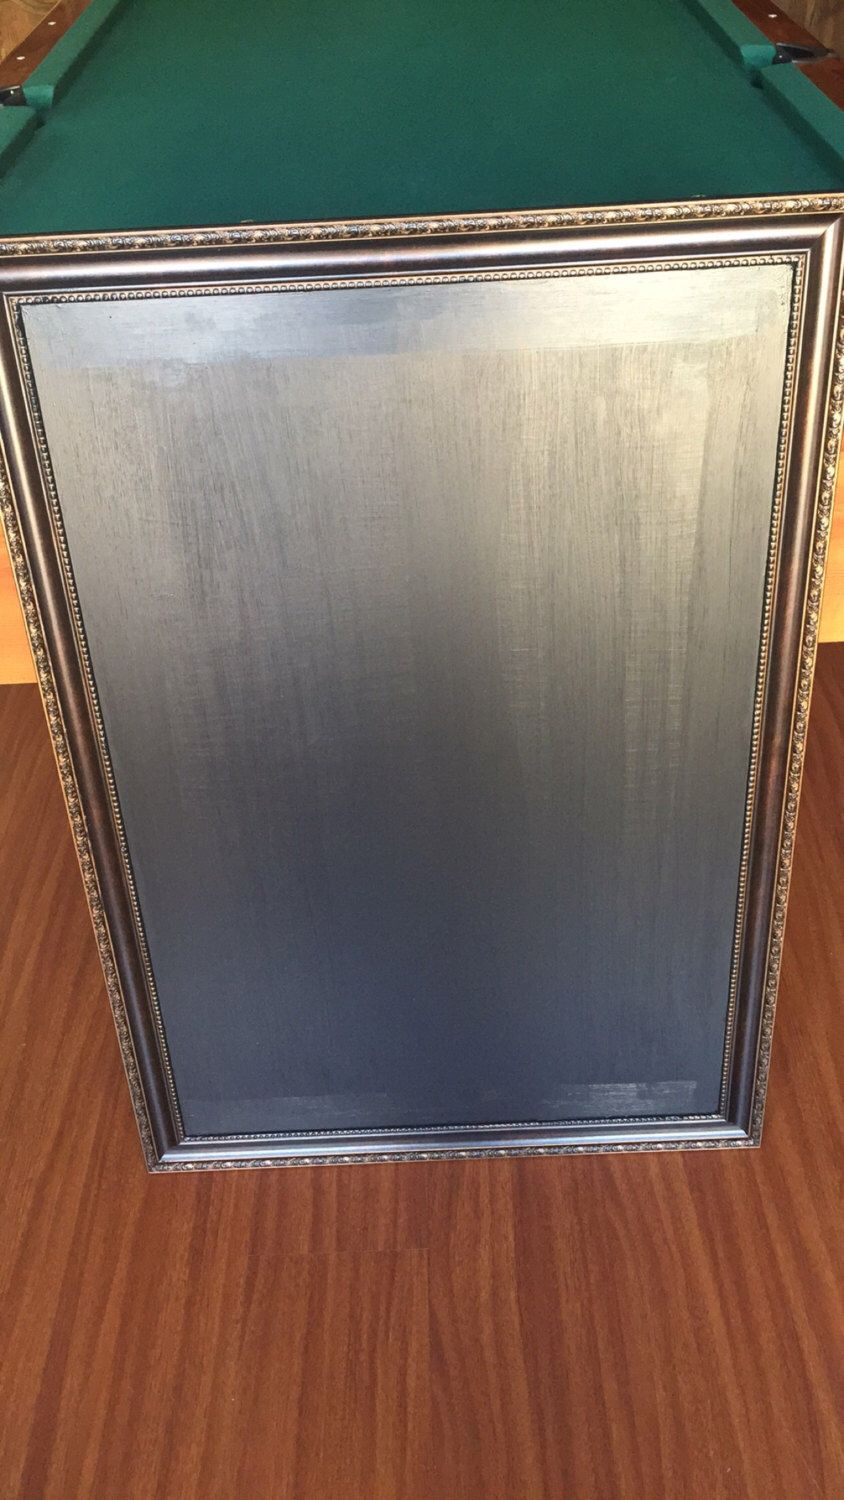 24inx36in x-large chalkboard with rustic frame wedding or household ...